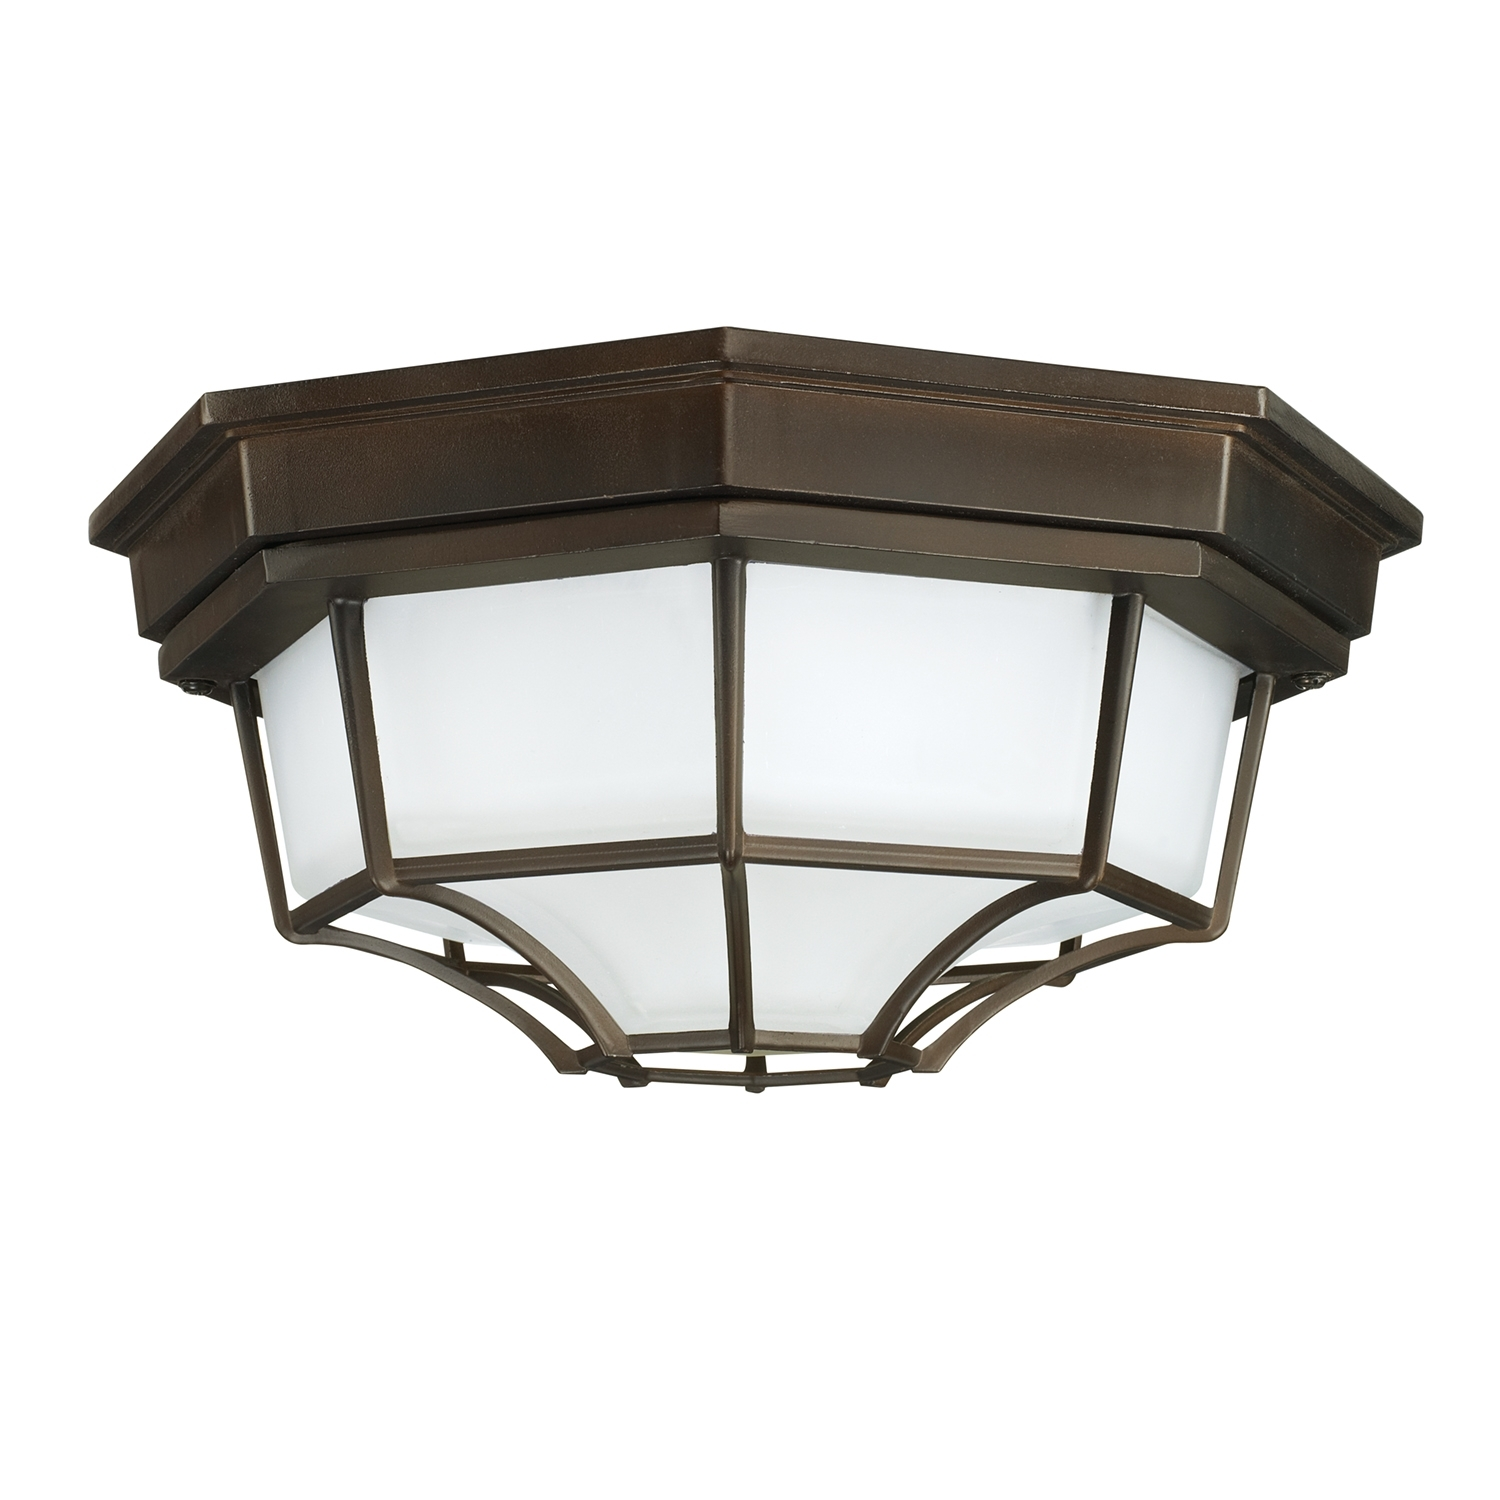 Outdoor Ceiling Lighting | Capital Lighting Intended For Outdoor Porch Ceiling Lights (View 10 of 15)